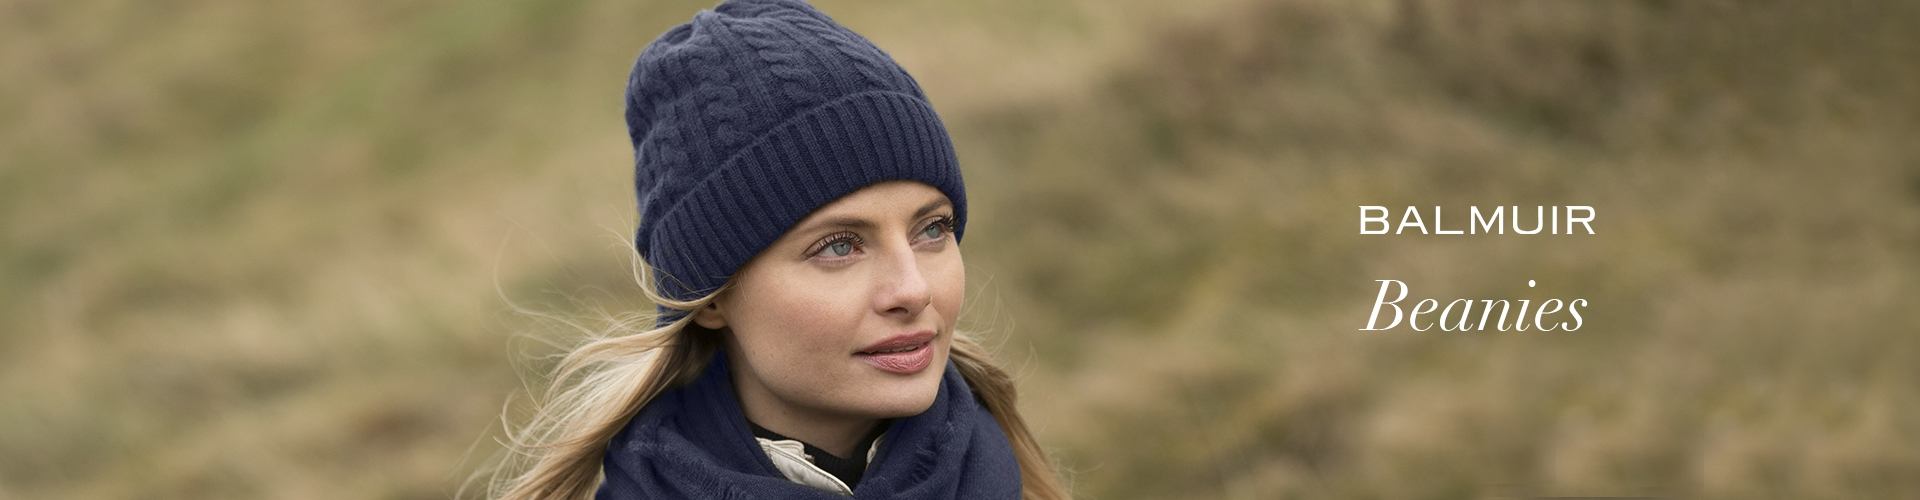 bb337829b9910 Extremely warm and soft Balmuir beanies are made of the finest